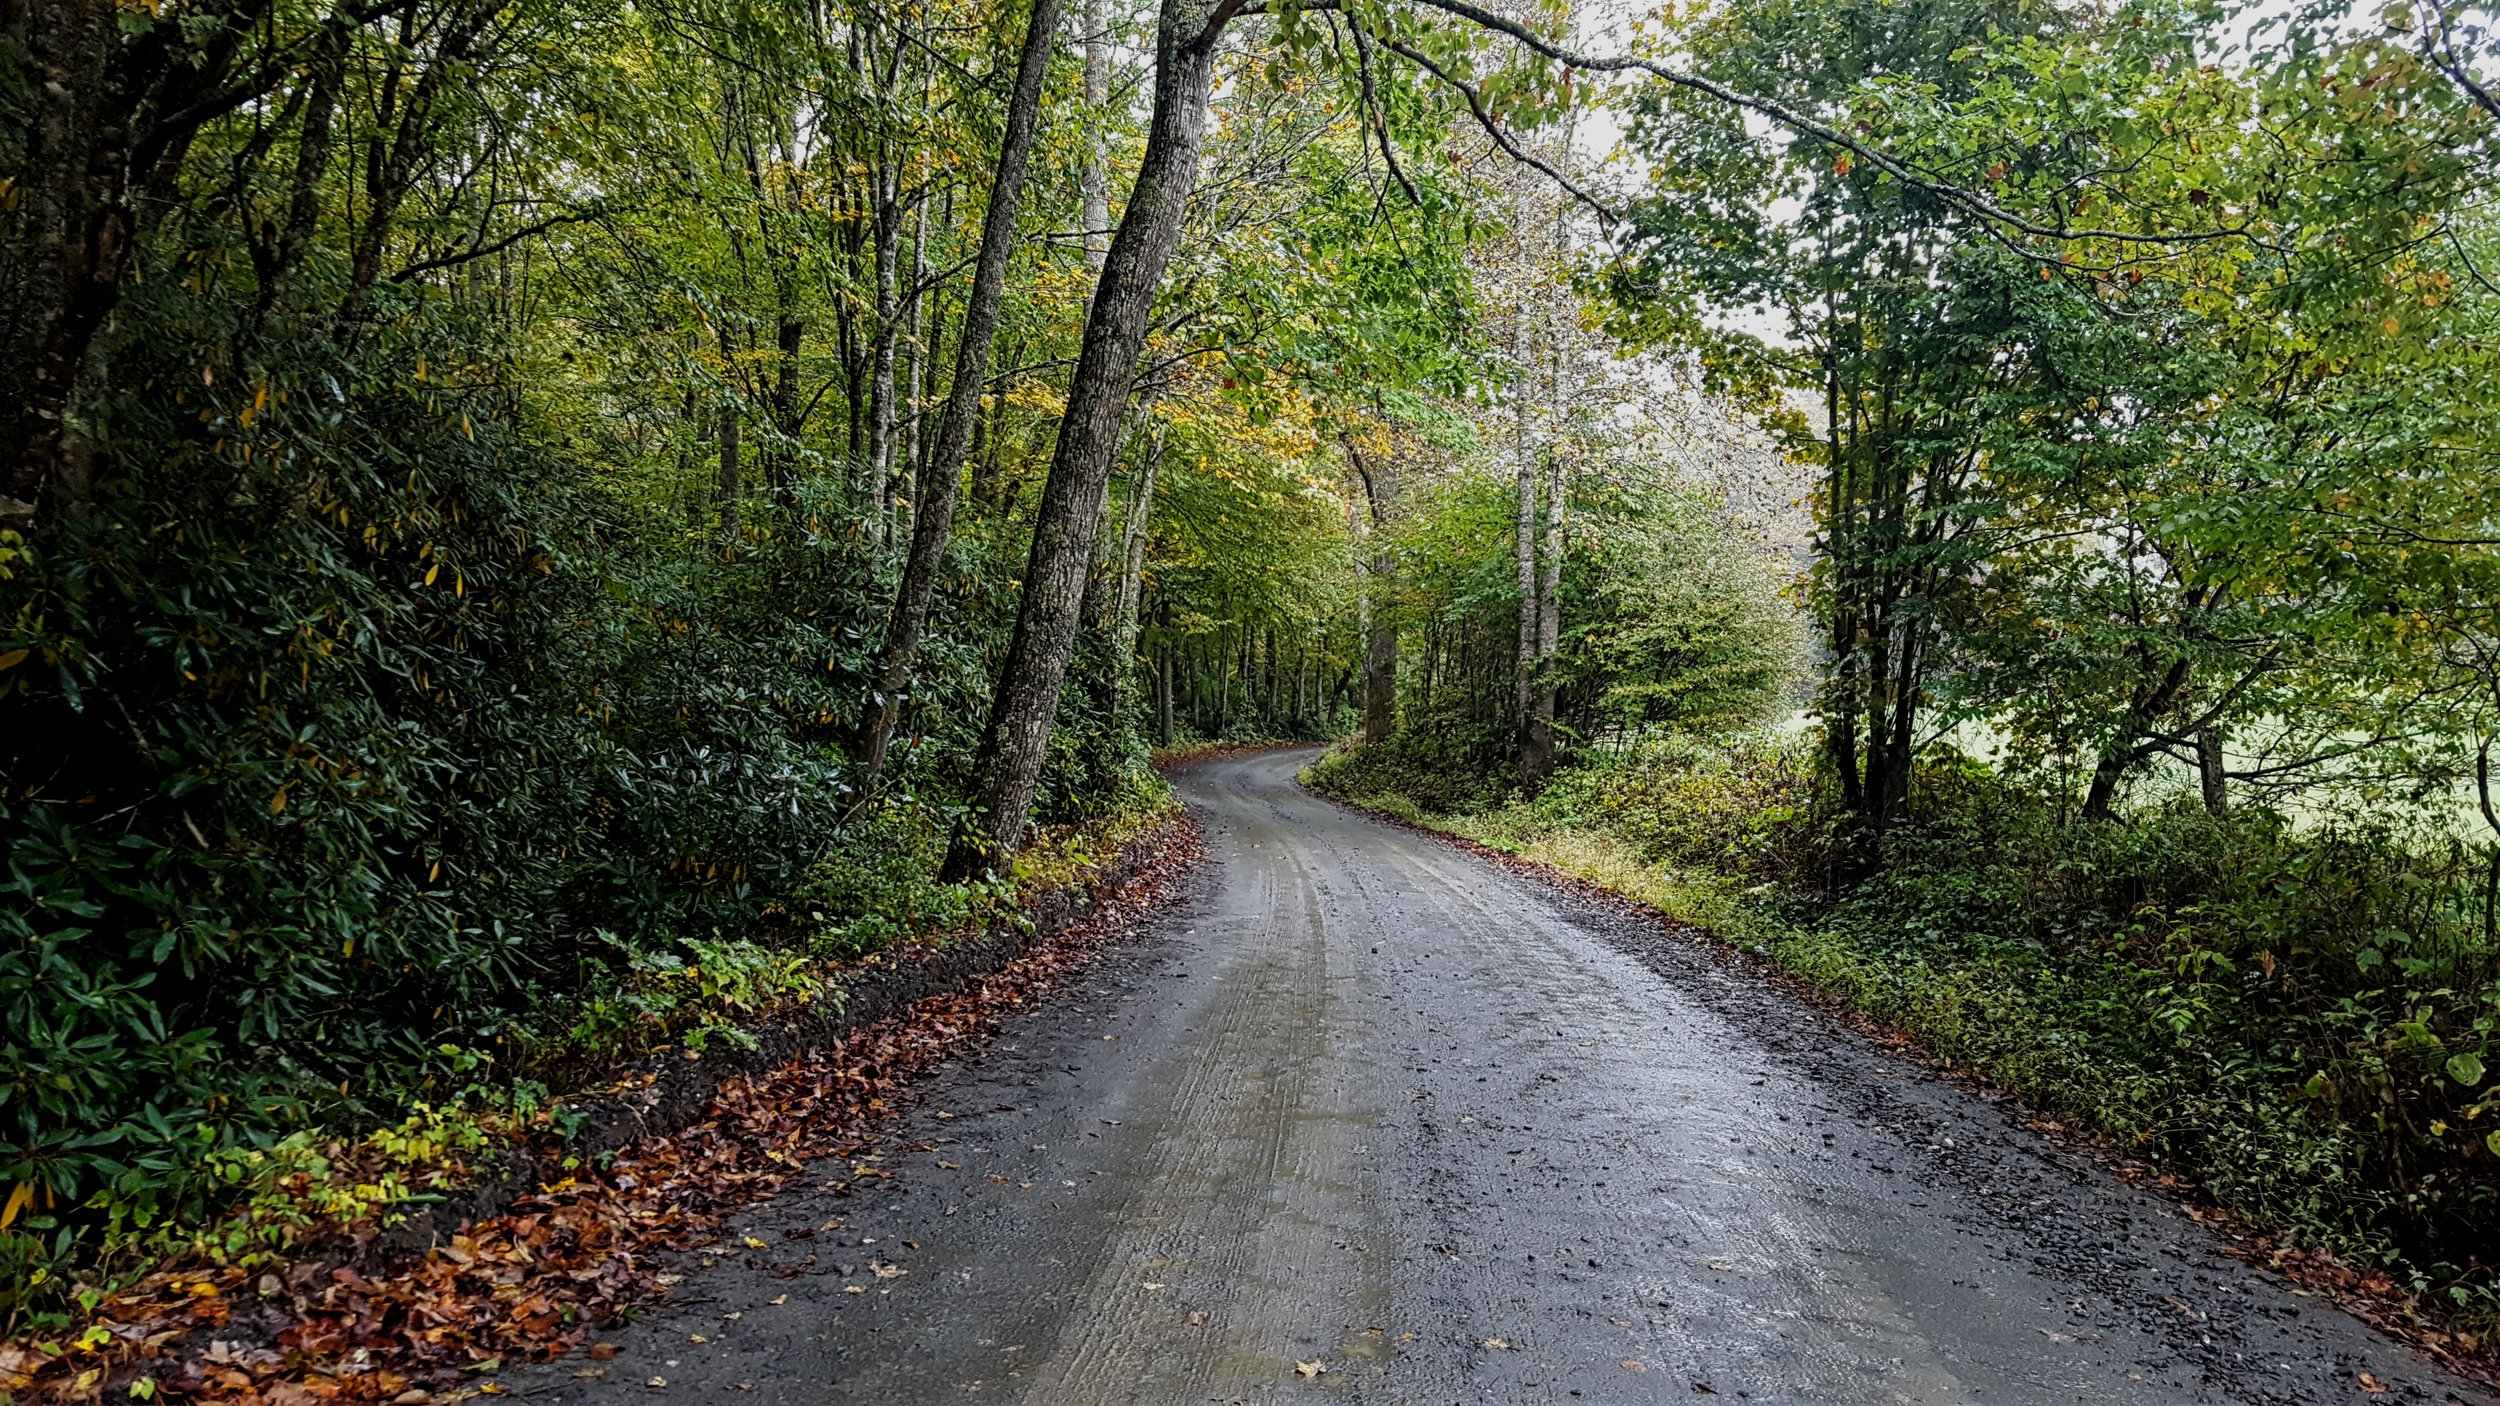 Rural Road in North Carolina